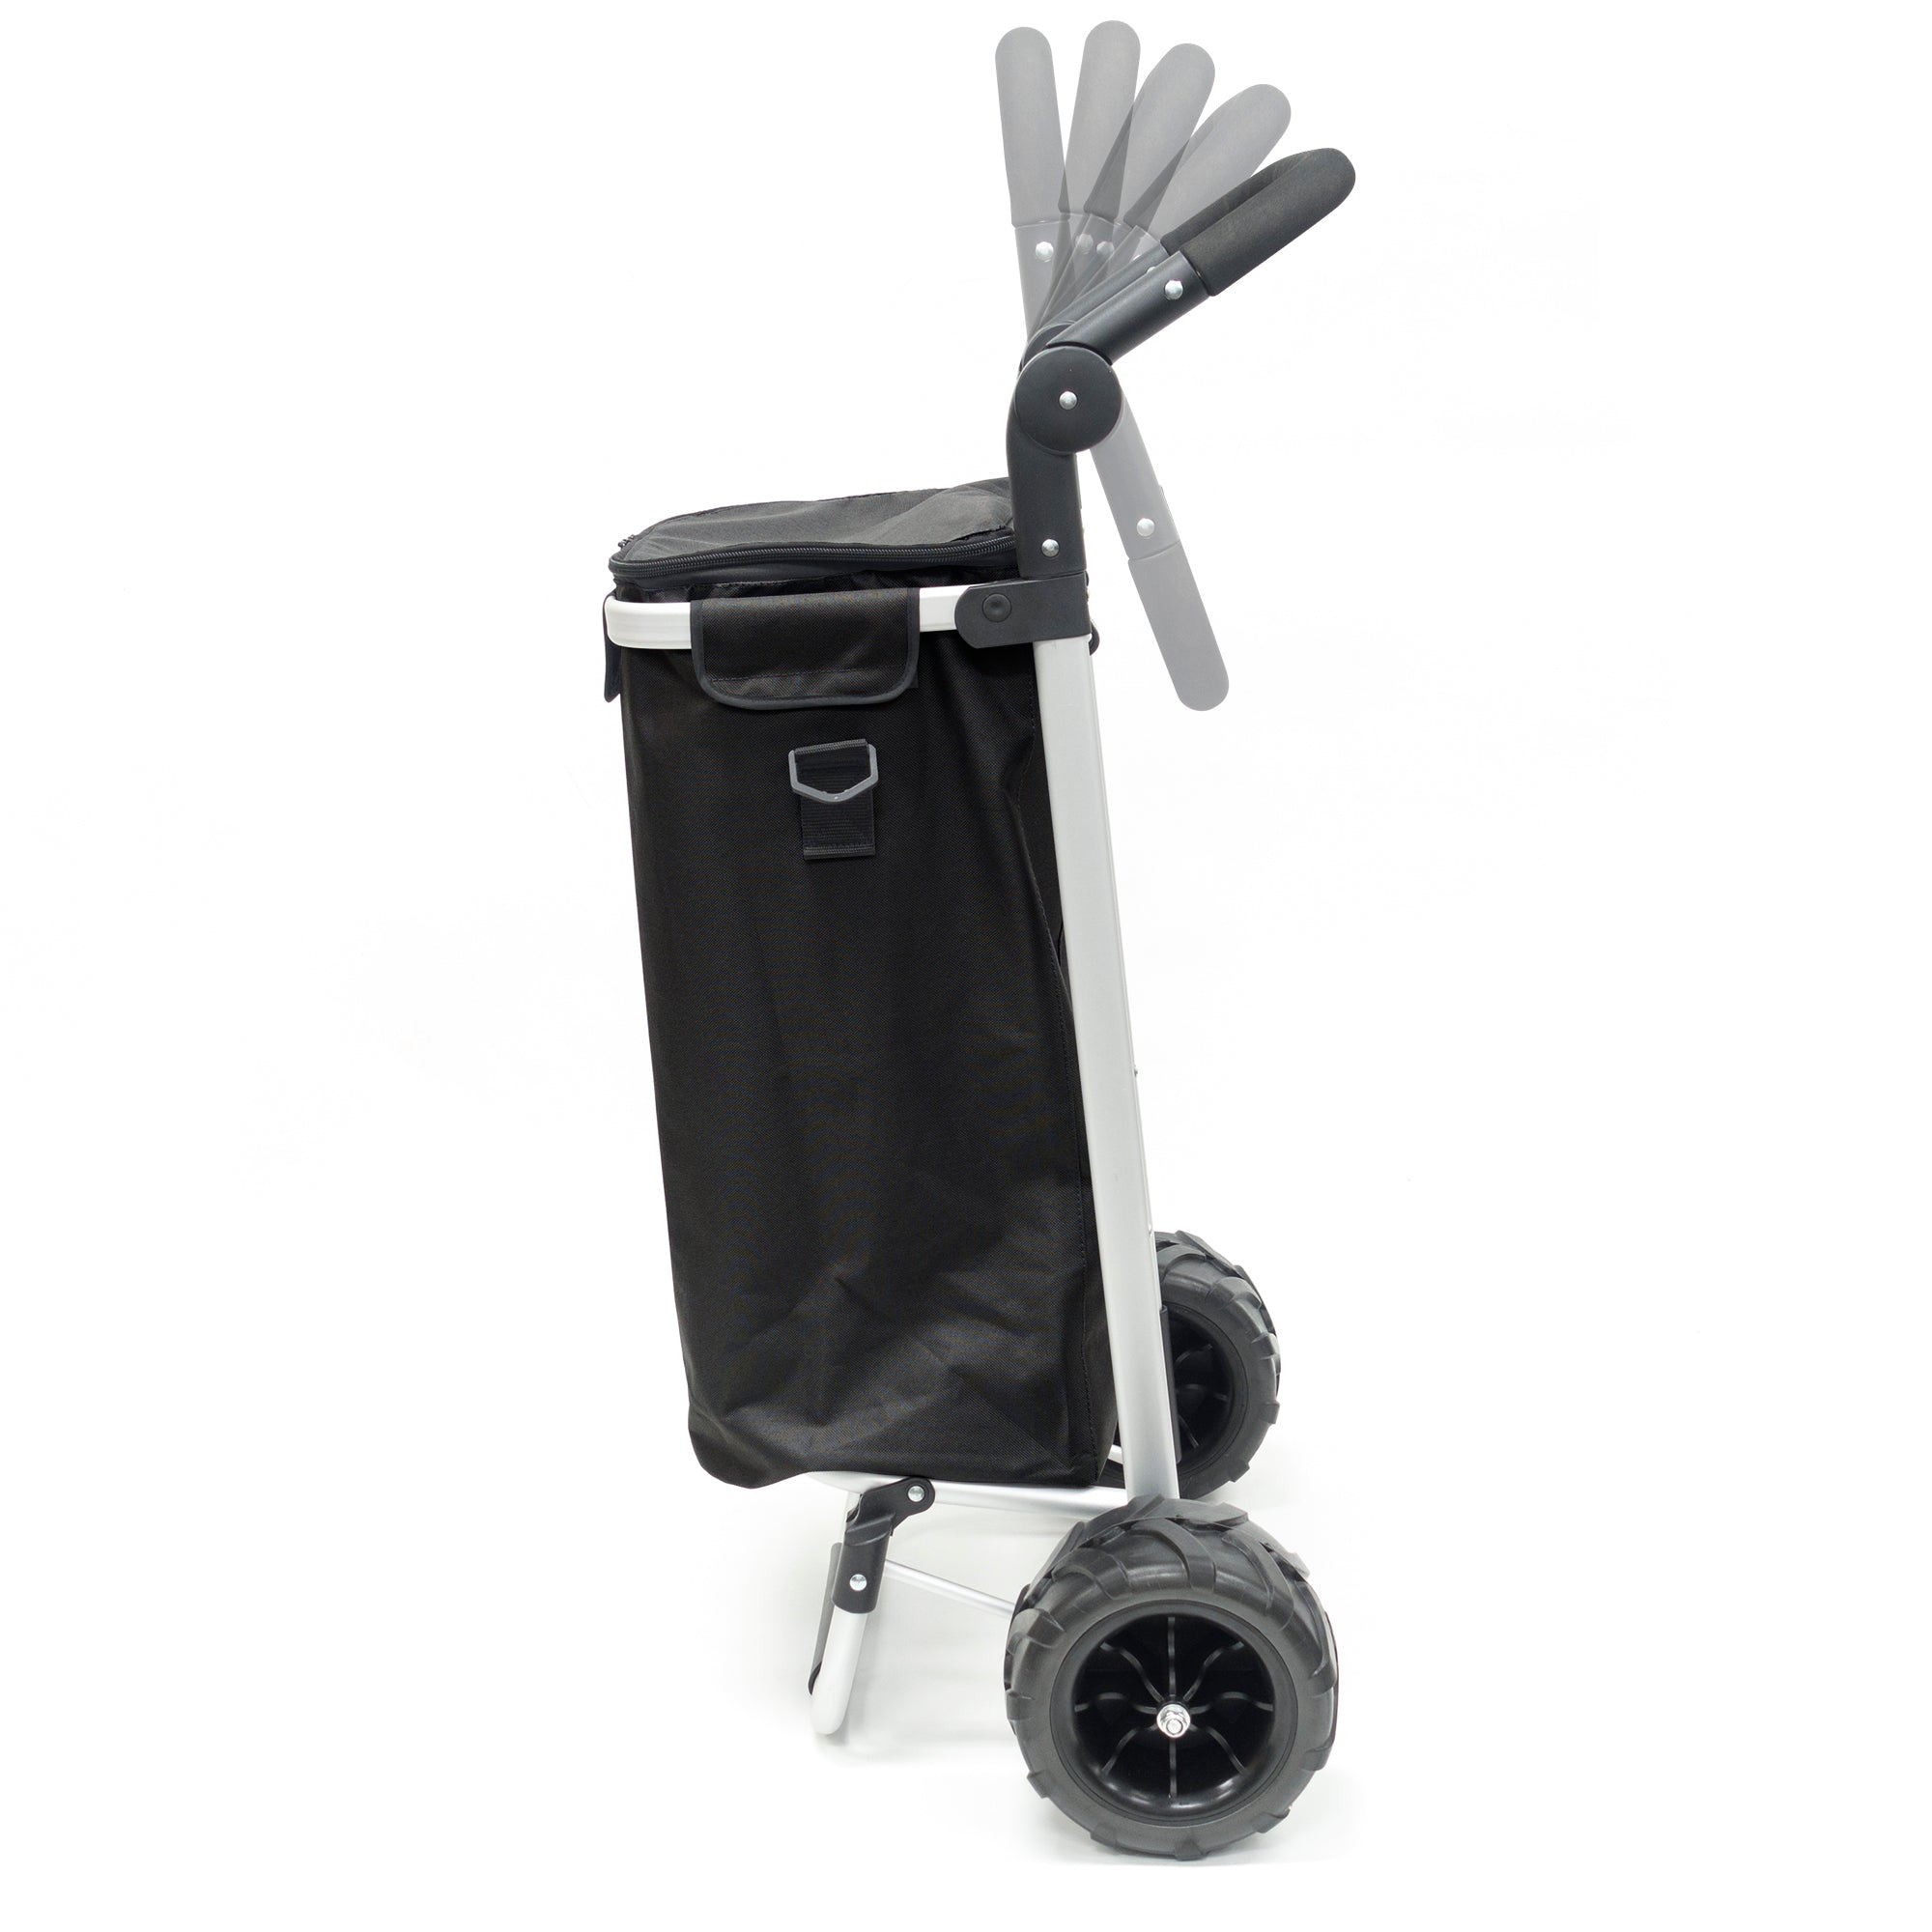 All-Terrain Folding Aluminum Trolley with Adjustable Handle 890300